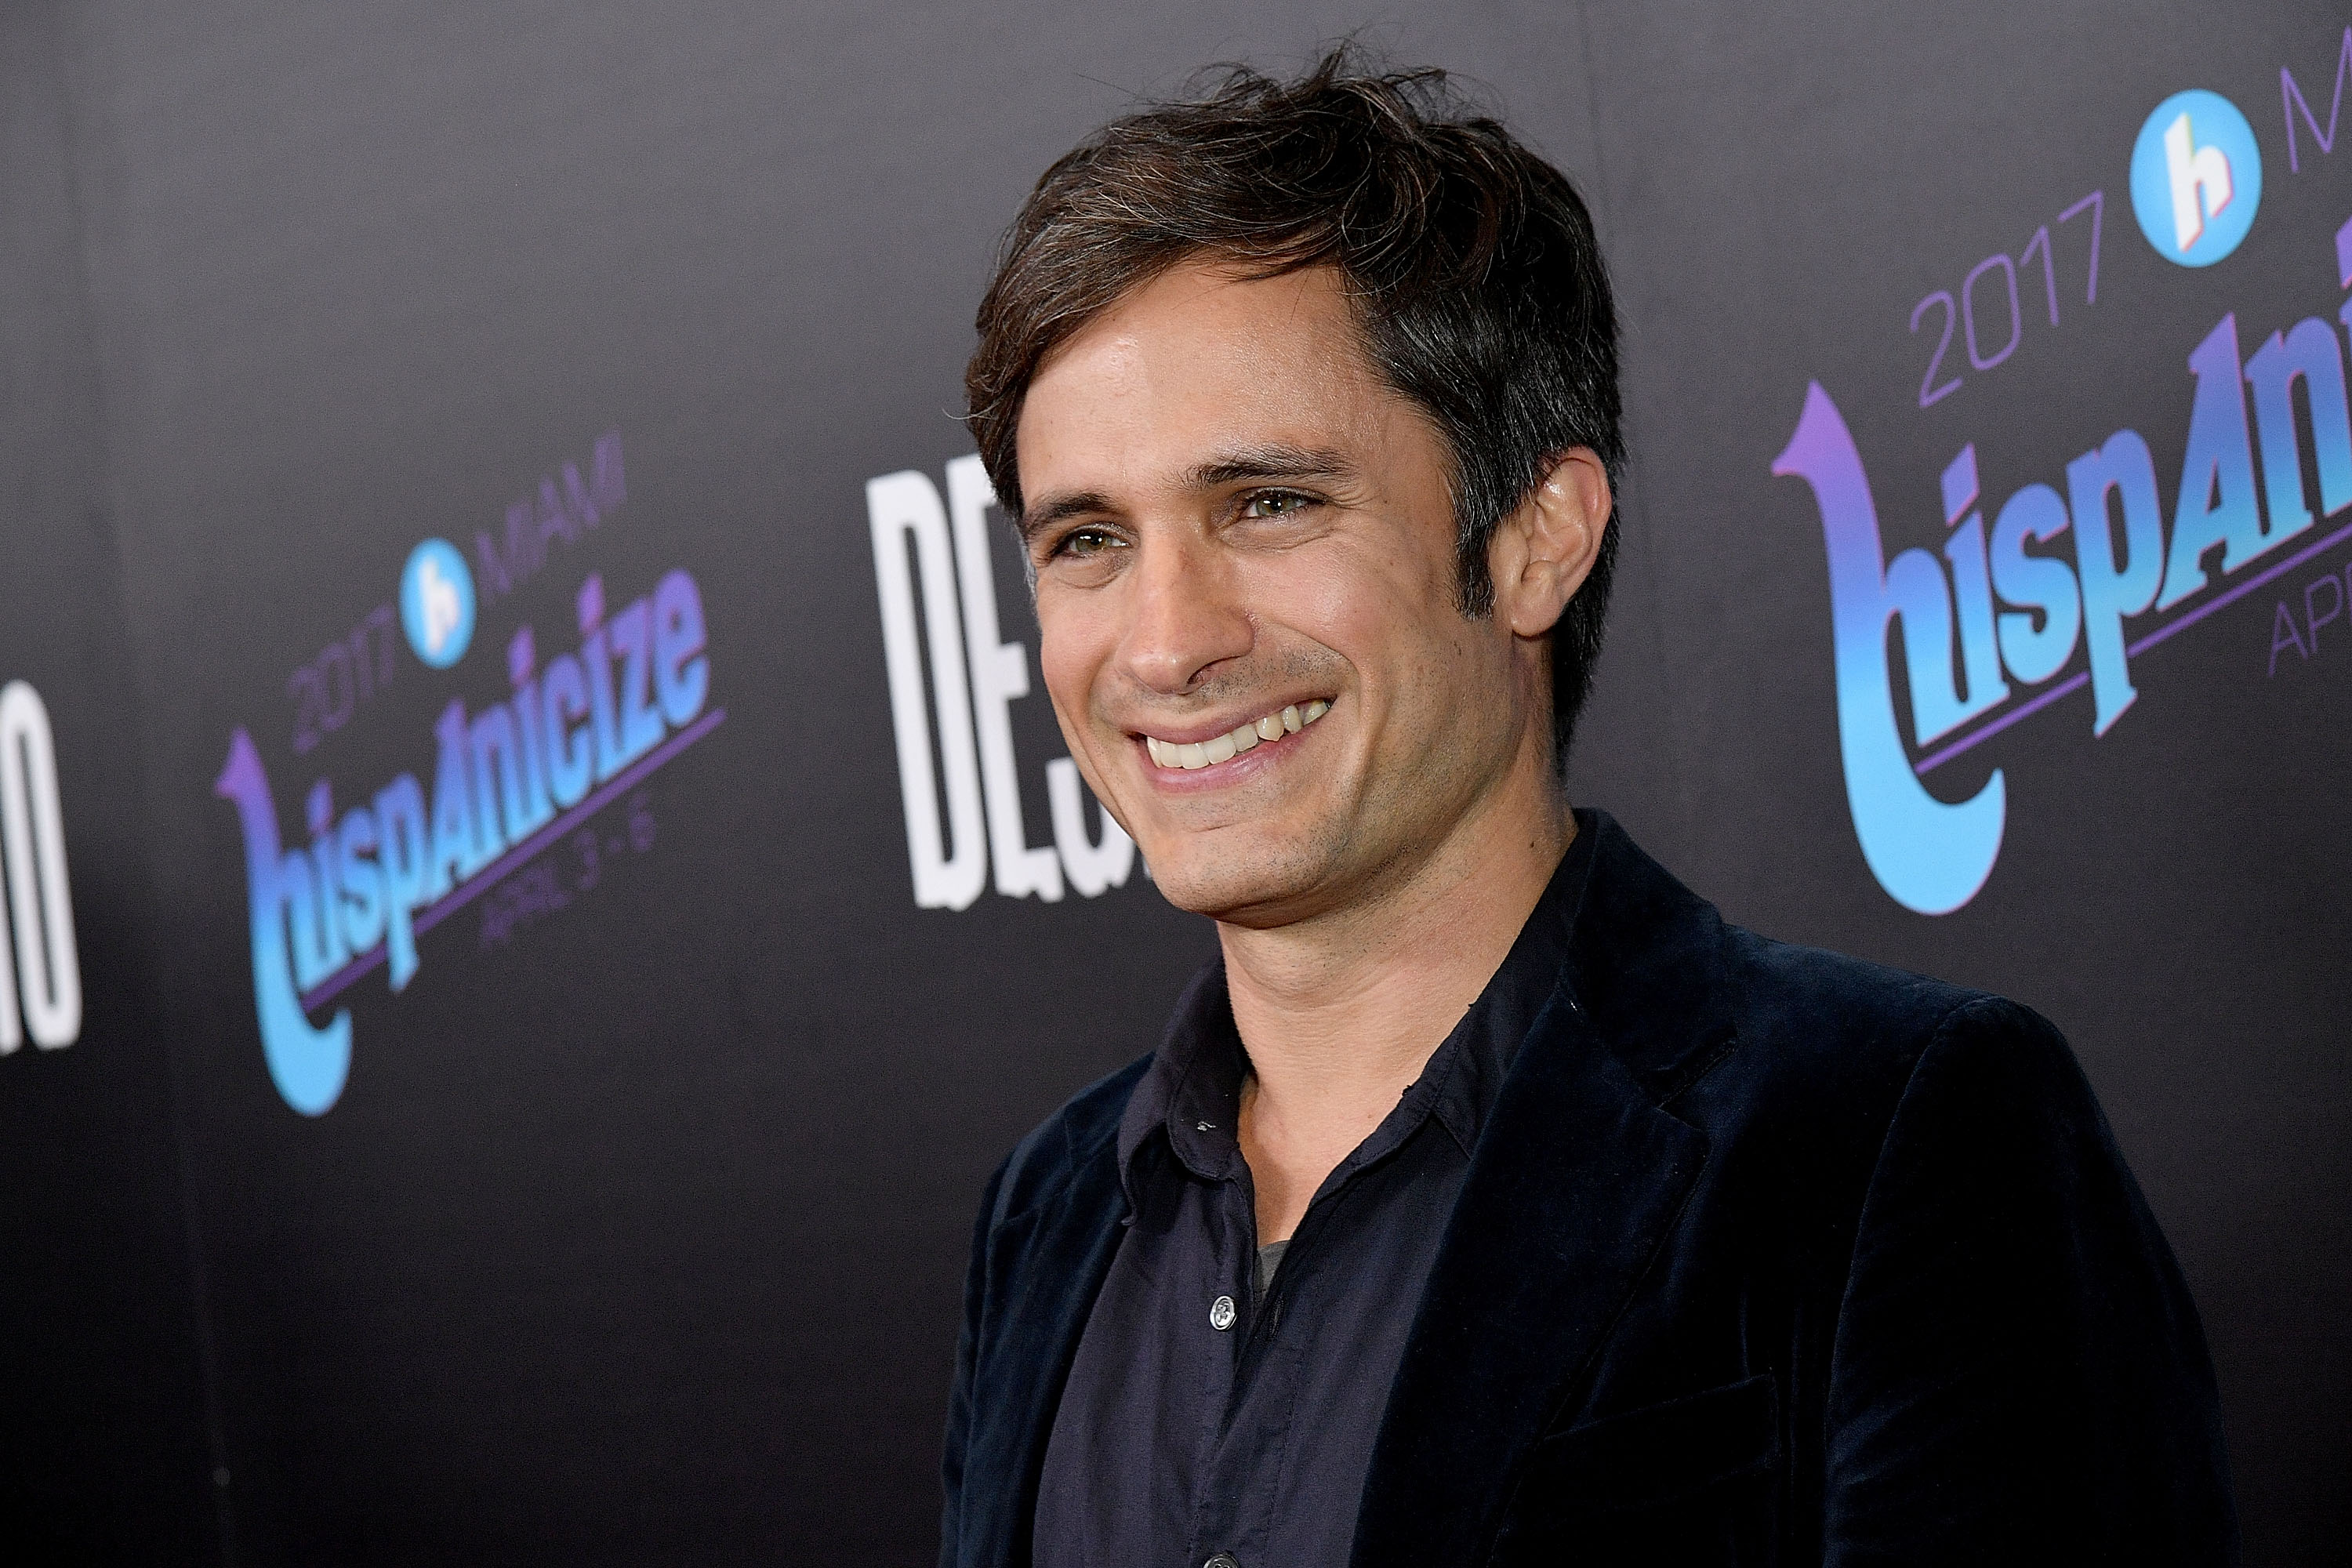 Gael Garcia Bernal Tweets About His Astonishing Resemblance to Meghan Markle